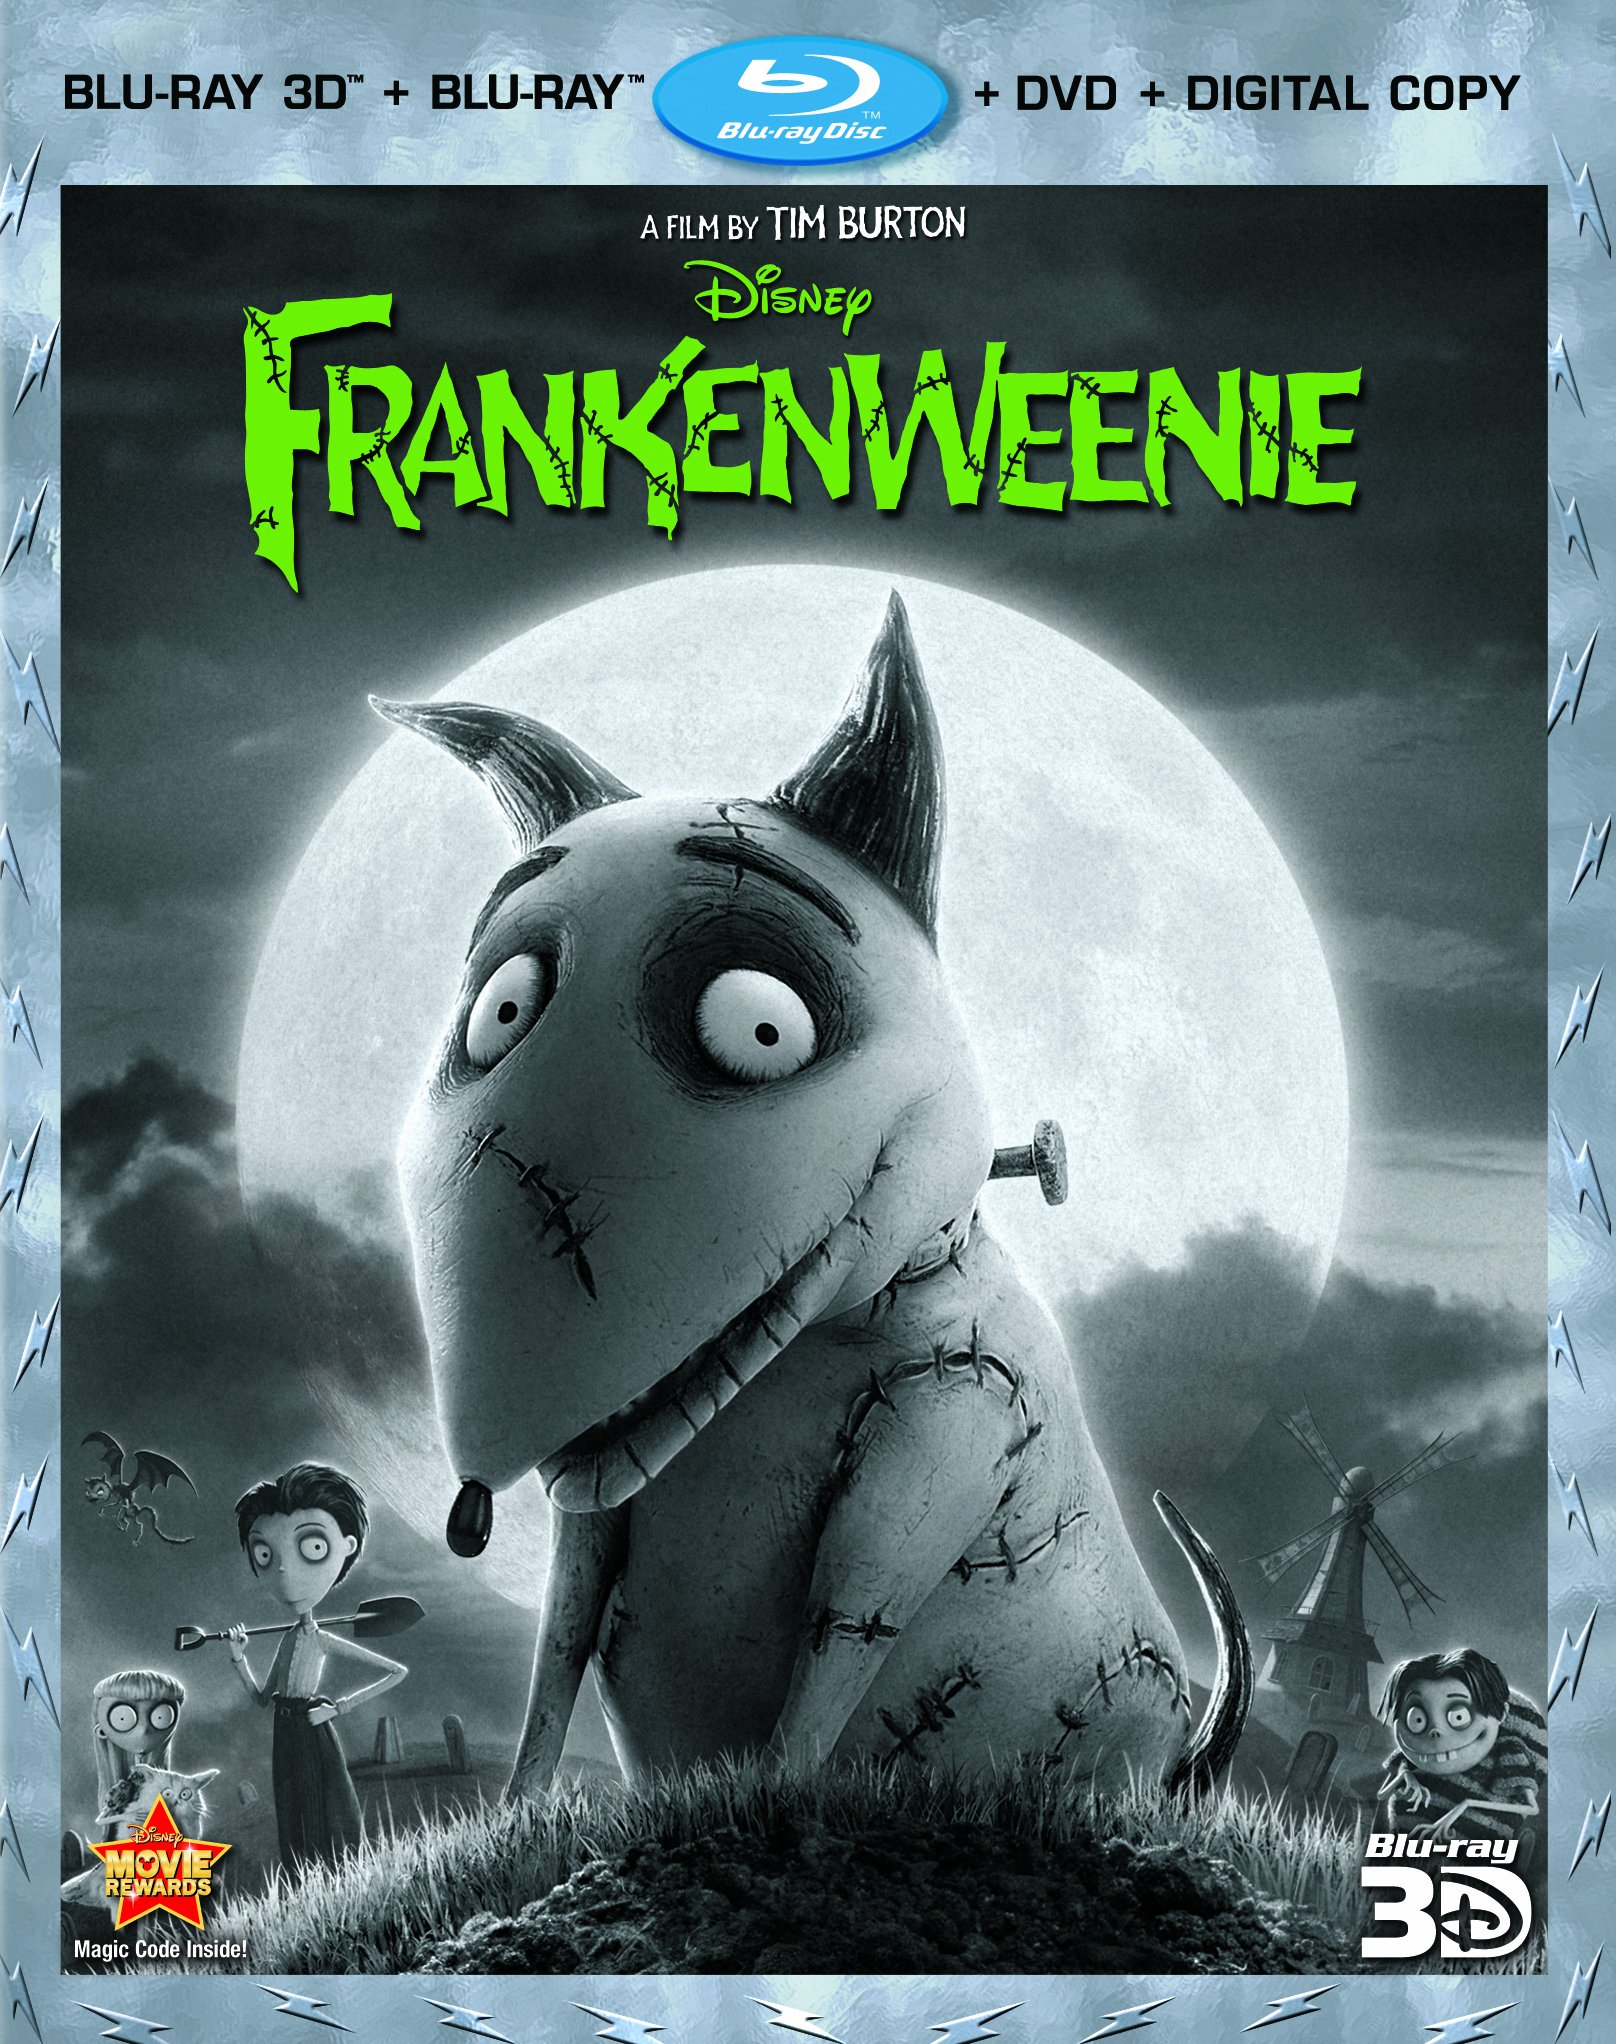 Ray 3d blu ray dvd digital copy frankenweenie two disc blu ray dvd